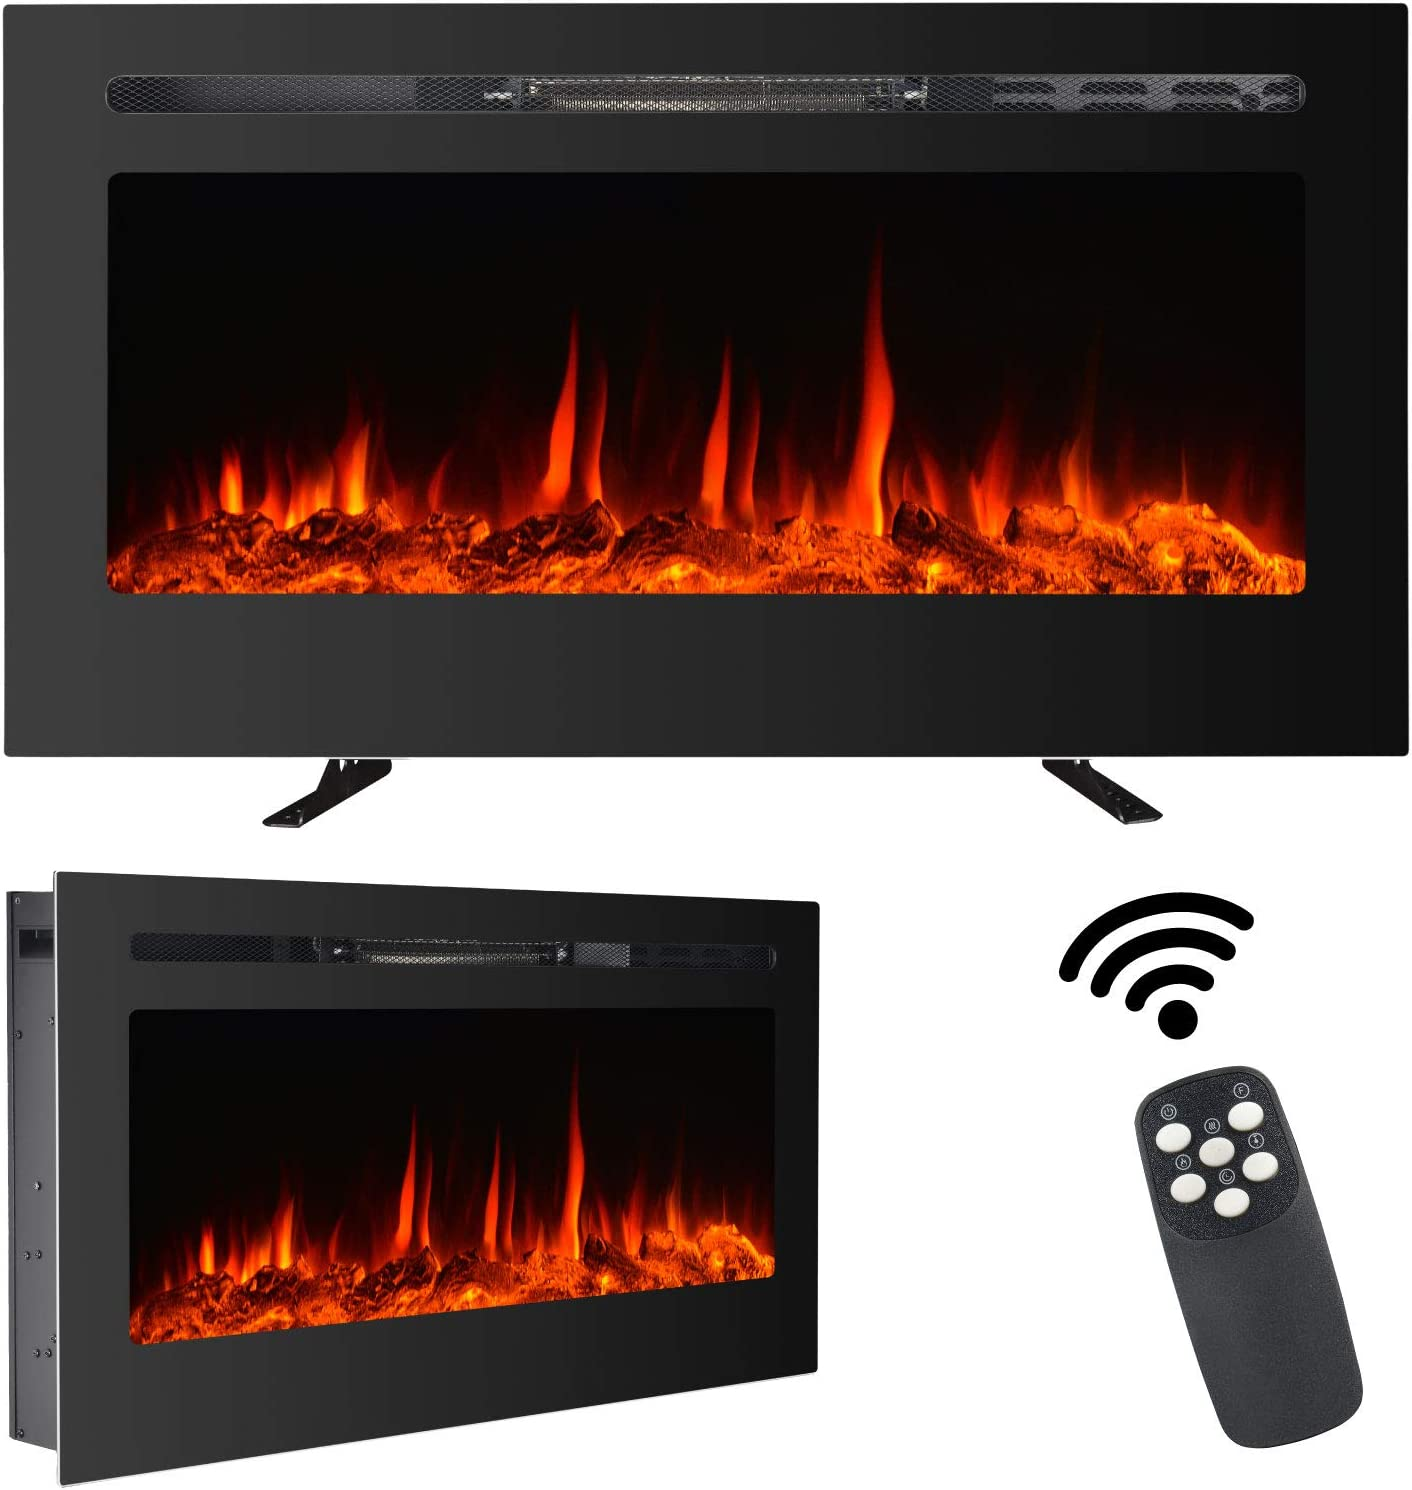 Maxxprime 36 Electric Fireplace Free Standing Recessed And Wall Mounted Fireplace Insert Heater With Touch Screen Control Panel Faux Fire Log Crystal Options 9 Flamer Color 750 1500w Amazon Ca Home Kitchen